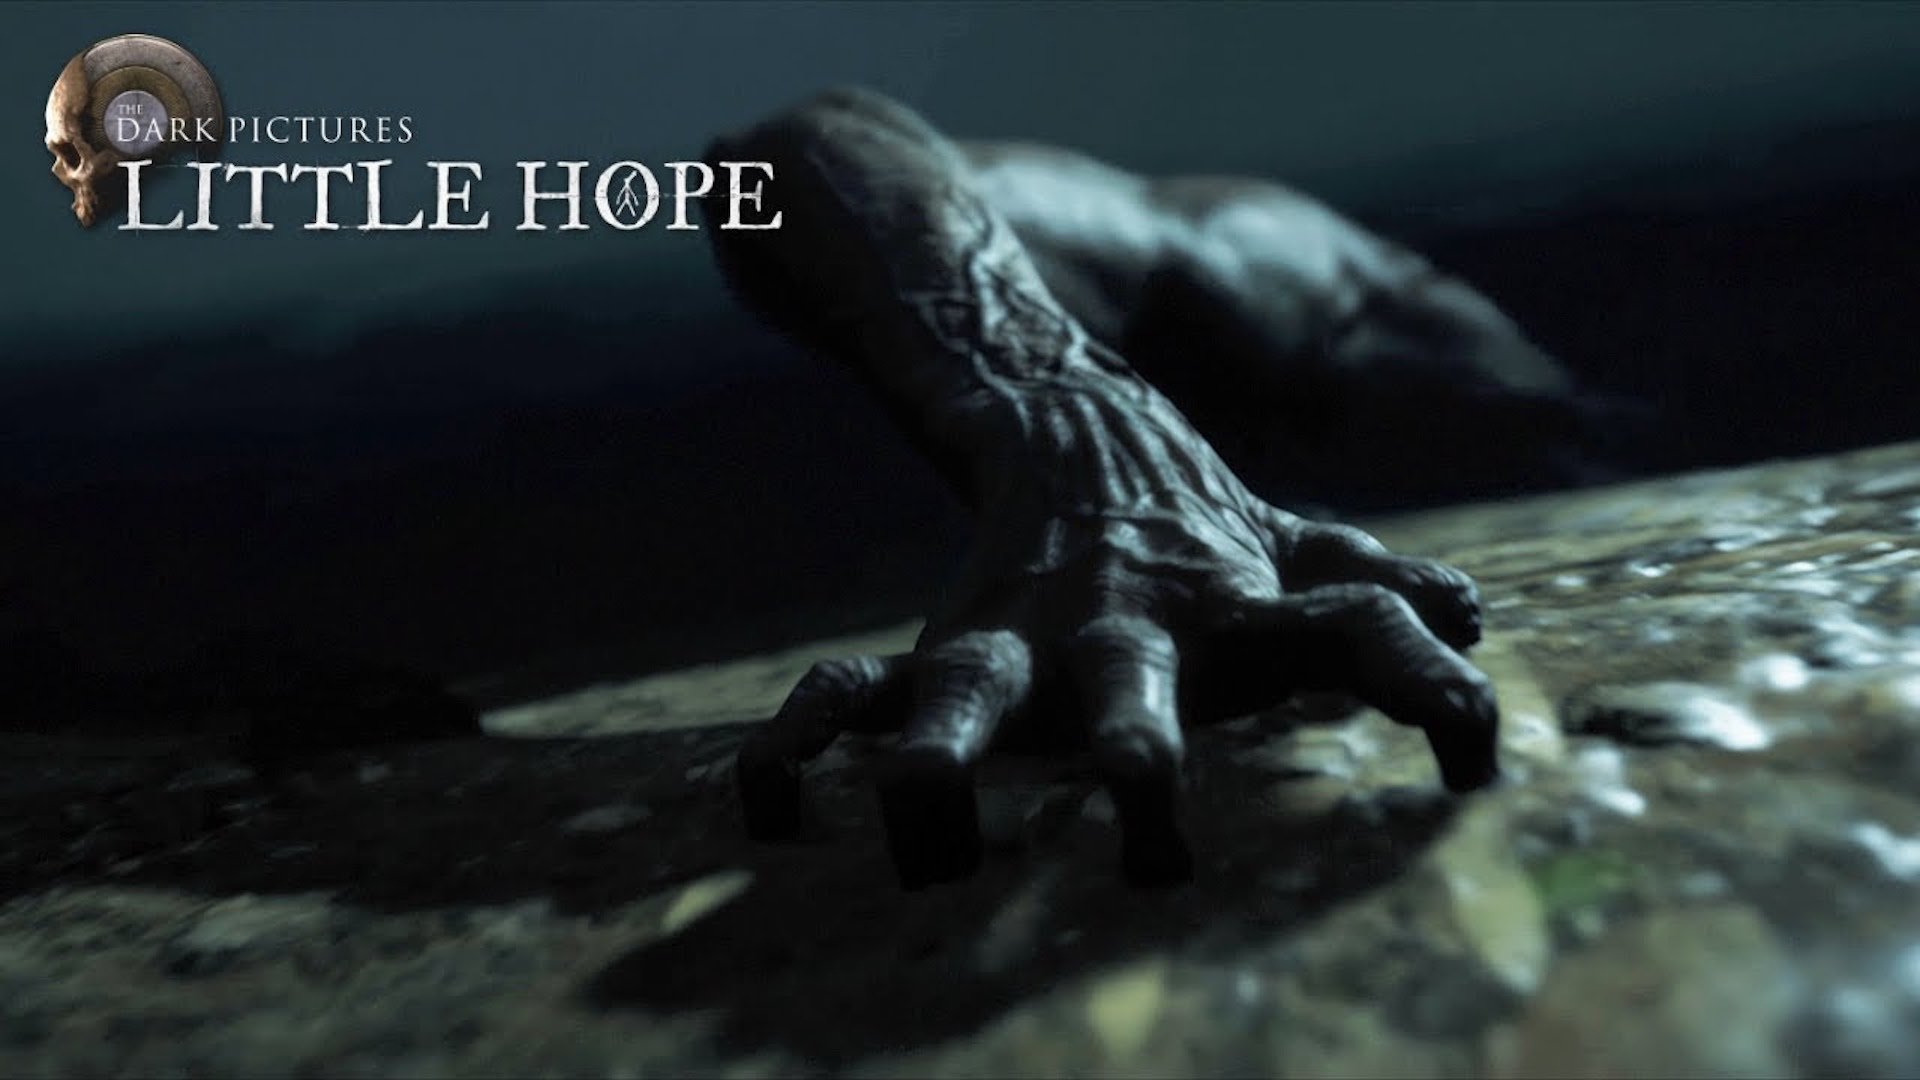 5 Things You Should Know About The Dark Pictures: Little Hope